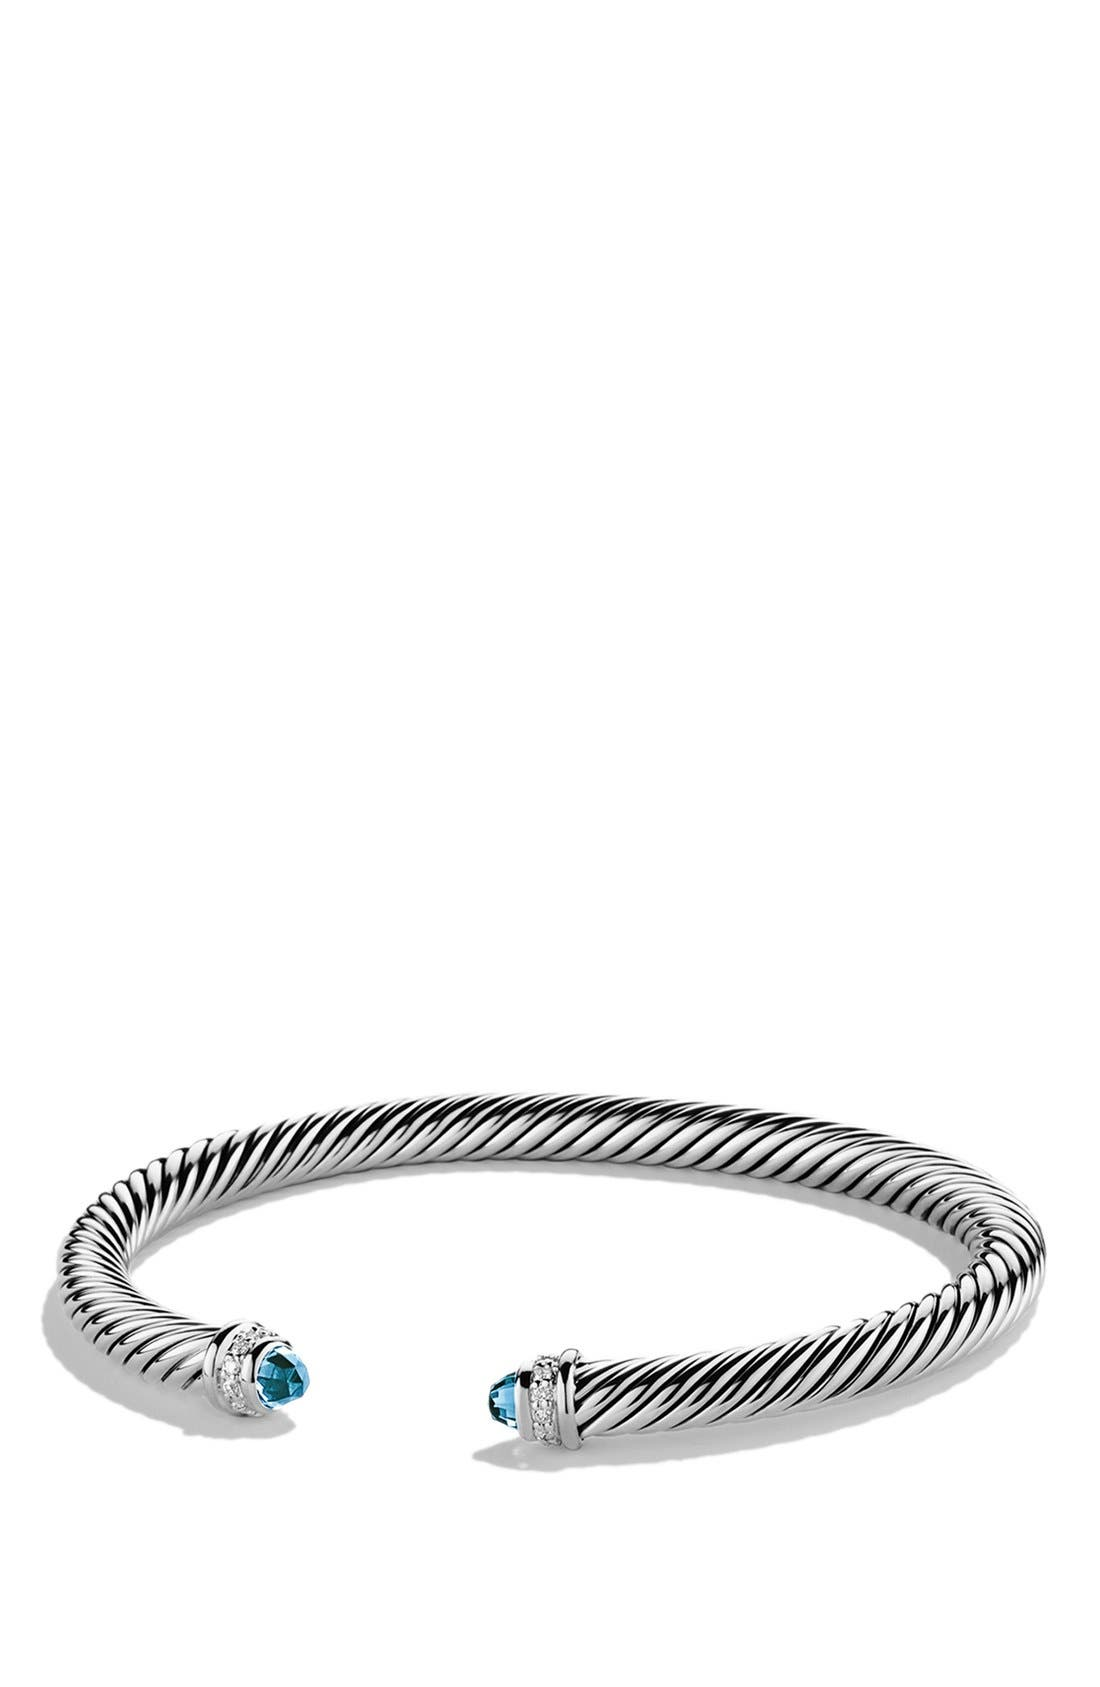 DAVID YURMAN 'Cable Classics' Bracelet with Semiprecious Stones